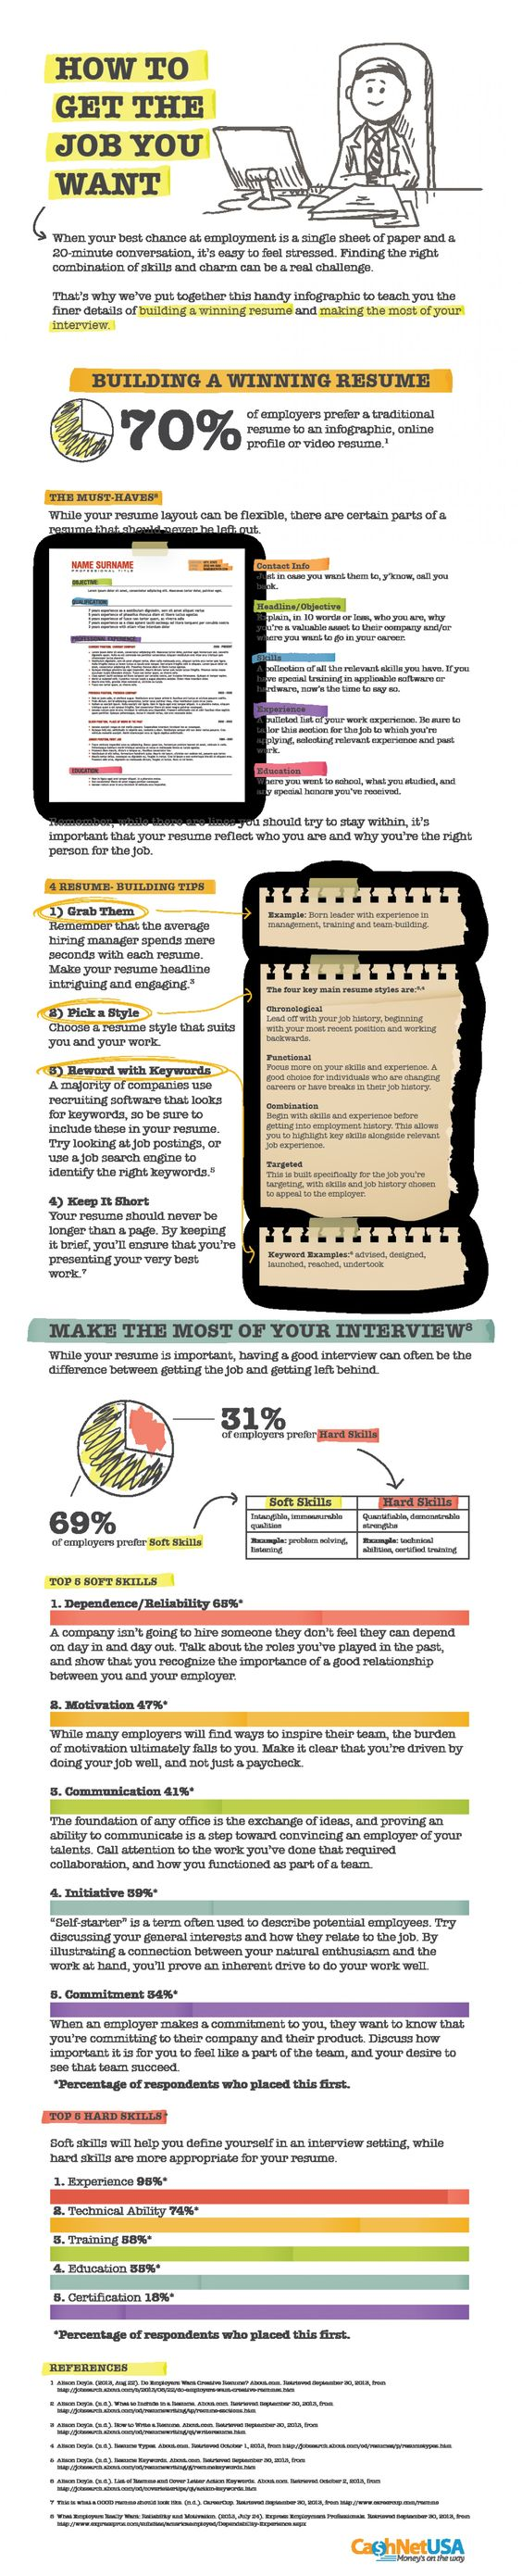 how to get the job you want infographies how to get the job you want